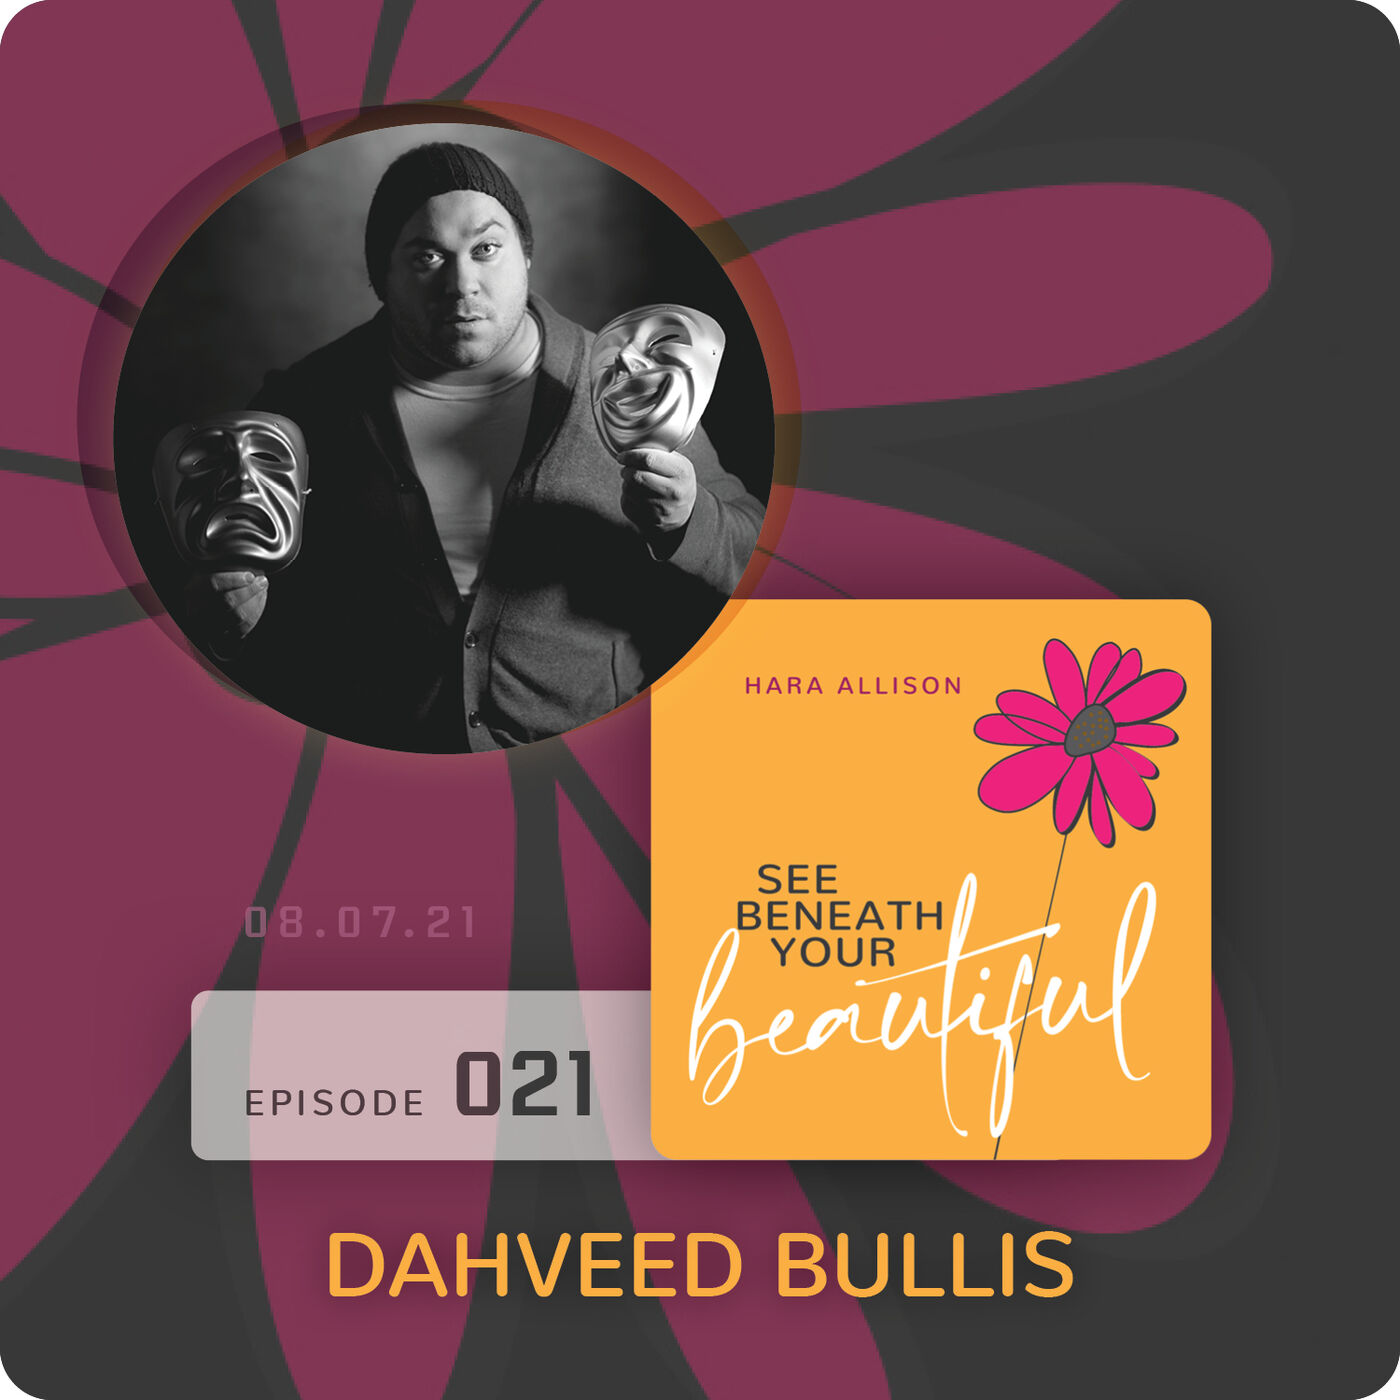 021. Dahveed Bullis discusses being an artist and an enigma as well as his rosy outlook despite an absent father, disabled mother, loss of his brother, growing up in poverty, a chest filled with tumors and so much more